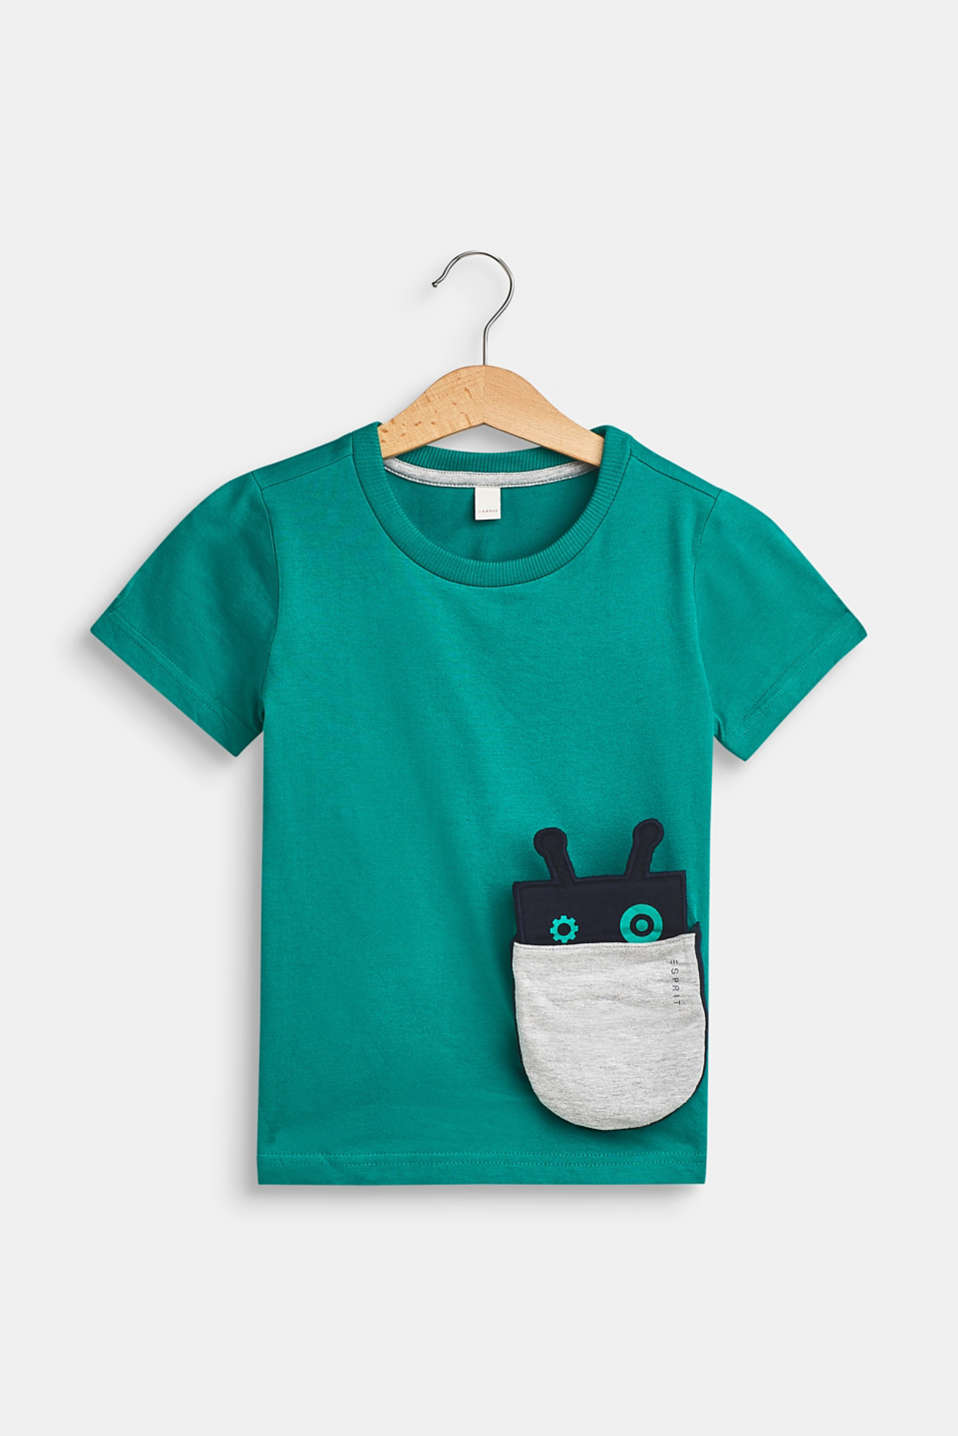 Esprit - T-shirt with a motif pocket, 100% cotton